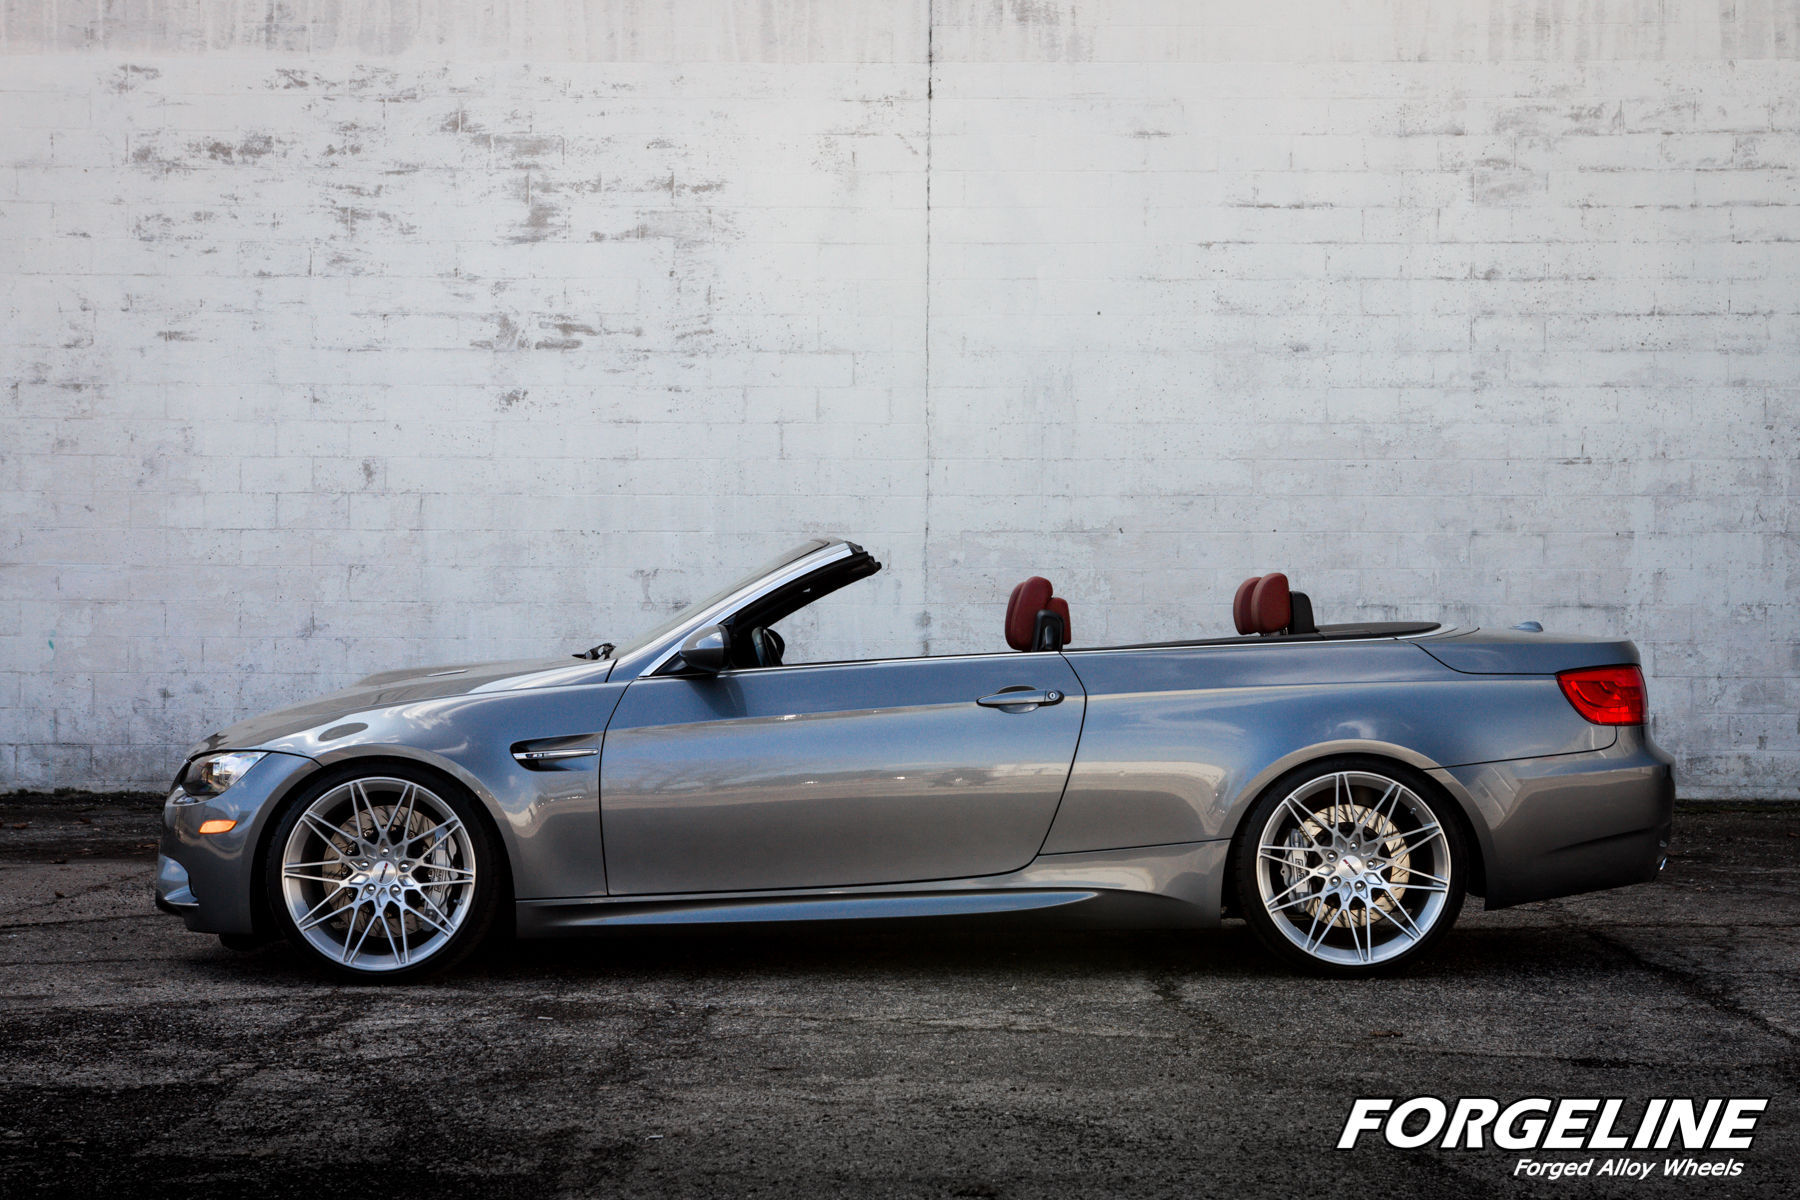 2011 BMW M3 | Sherri Schardt's BMW E92 M3 Convertible on Forgeline One Piece Forged Monoblock MT1 Wheels